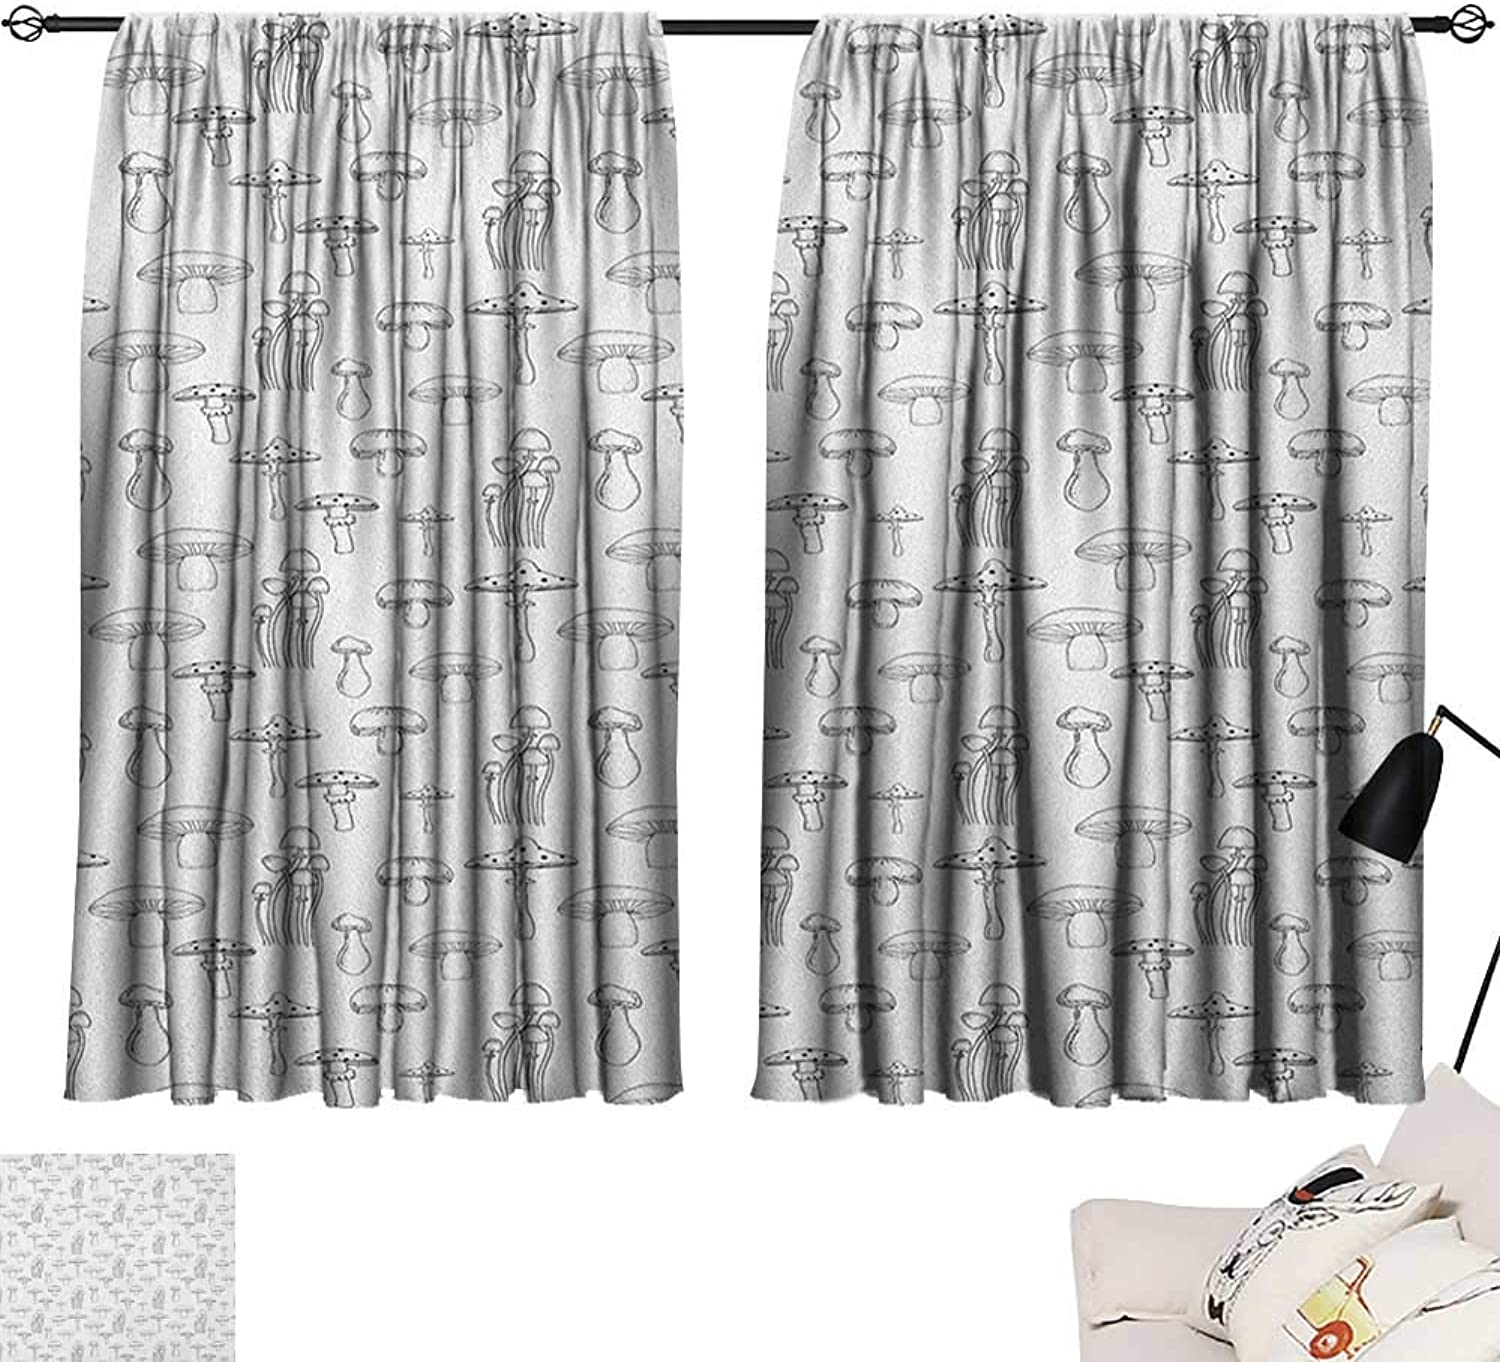 Homehot Thermal Curtains Mushroom,Collection of Different Mushrooms Doodle Style Monochrome Display Organic Garden, Black White 72 x96 ,Home Garden Bedroom Outdoor Indoor Wall Decorations